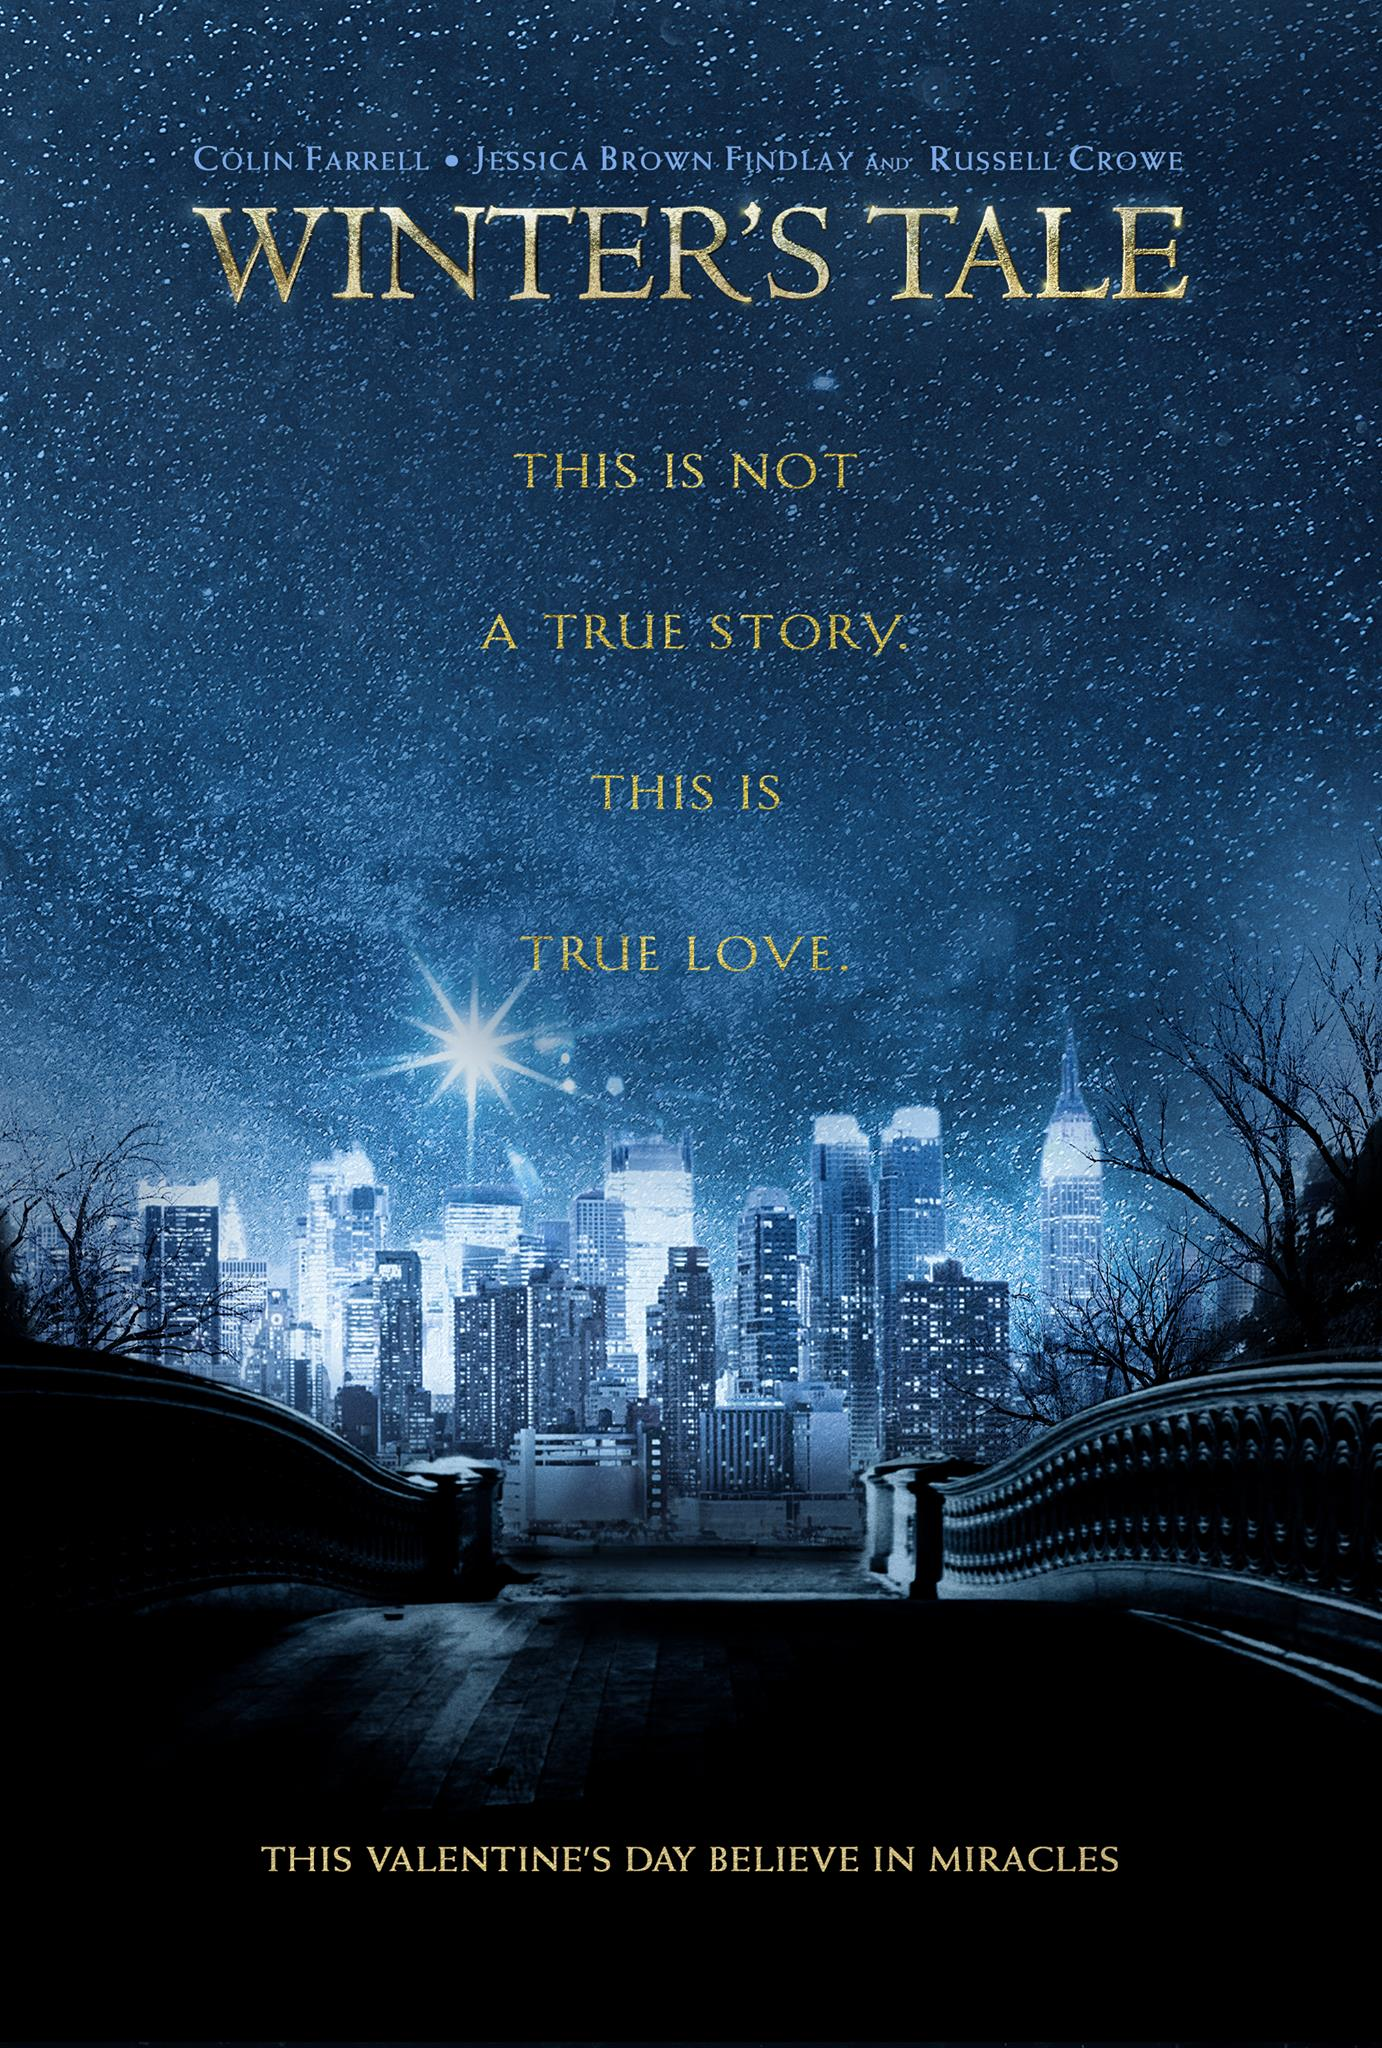 WINTER'S TALE-Offciail Poster Banner PROMO POSTER-08NOVEMBRO2013